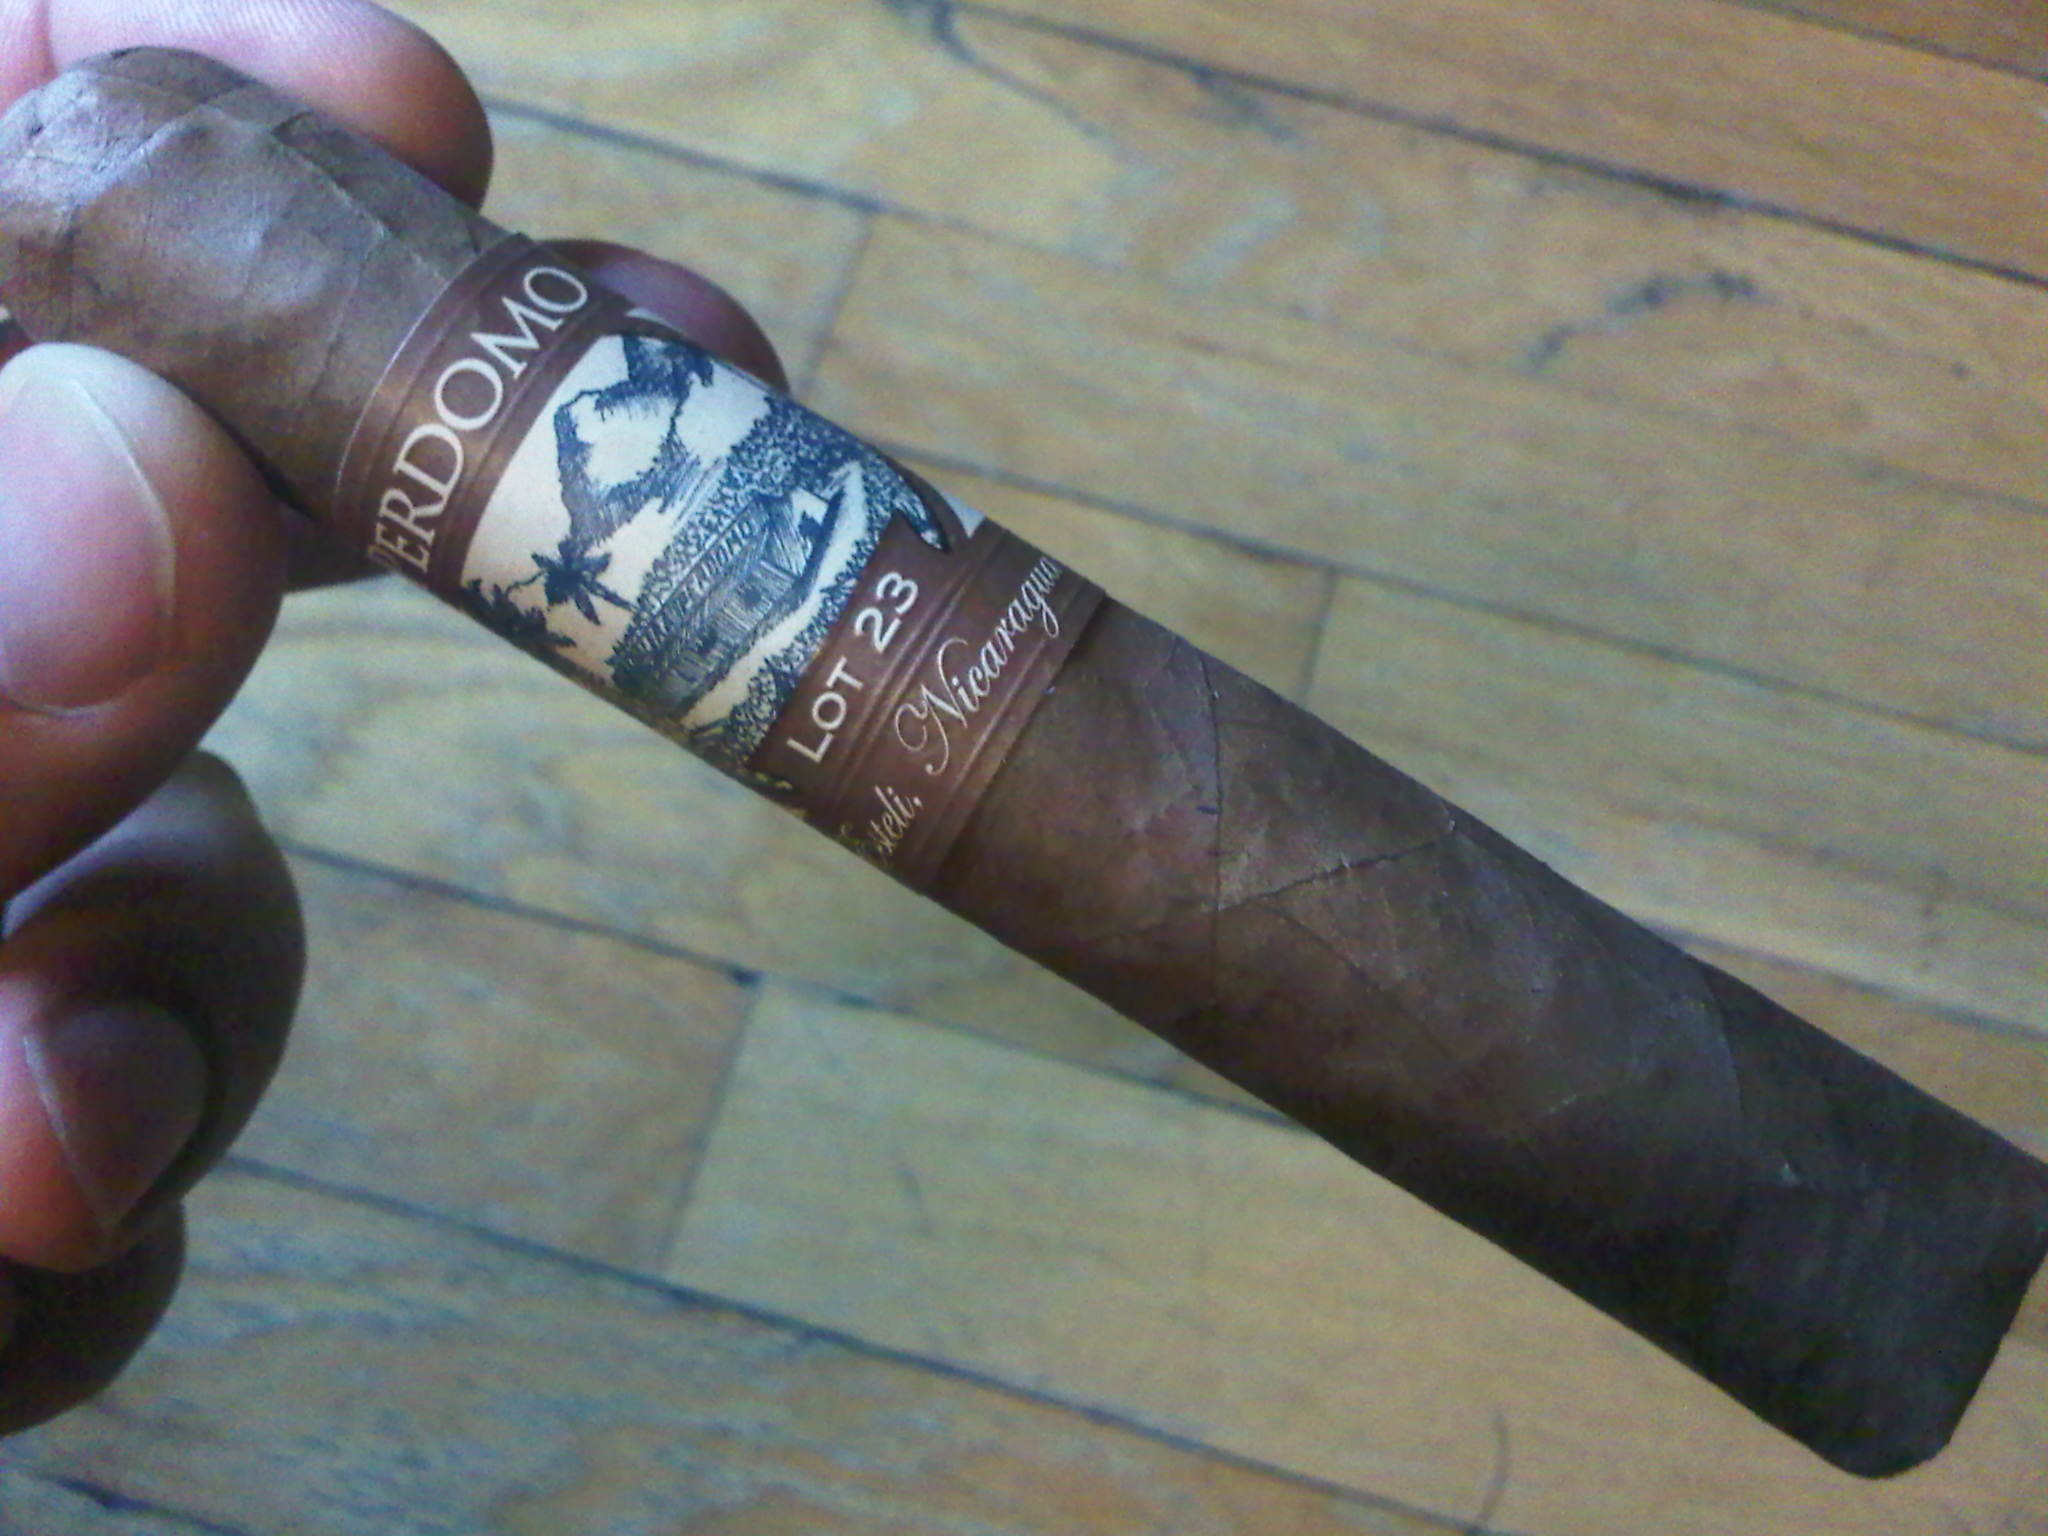 Perdomo Lot 23 Robusto Cigar